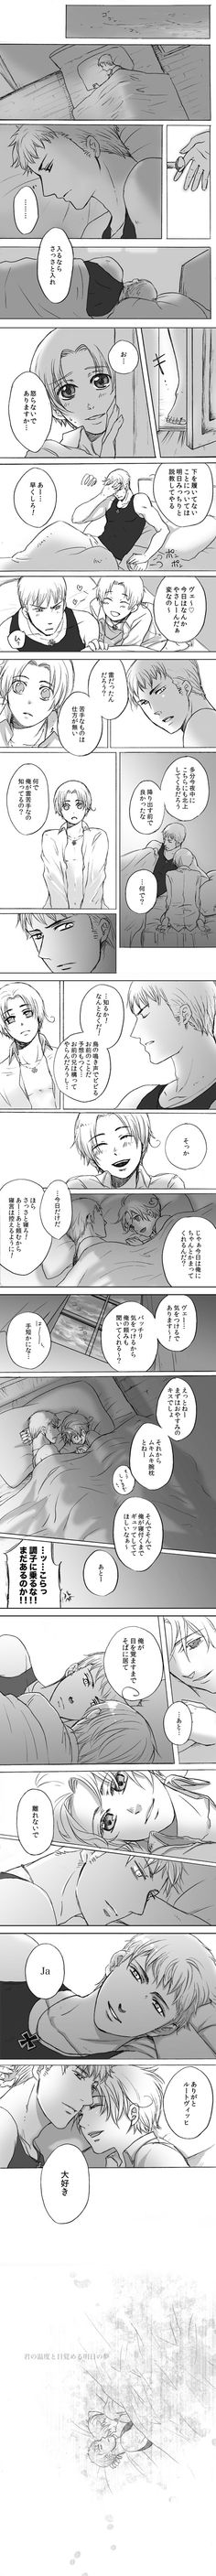 GerIta. <--- I WANT TO HAVE THE TRANSLATION OF THIS ASDFG - OH AND ITALY'S WEARING A CROSS I CAN'T THE CUTE